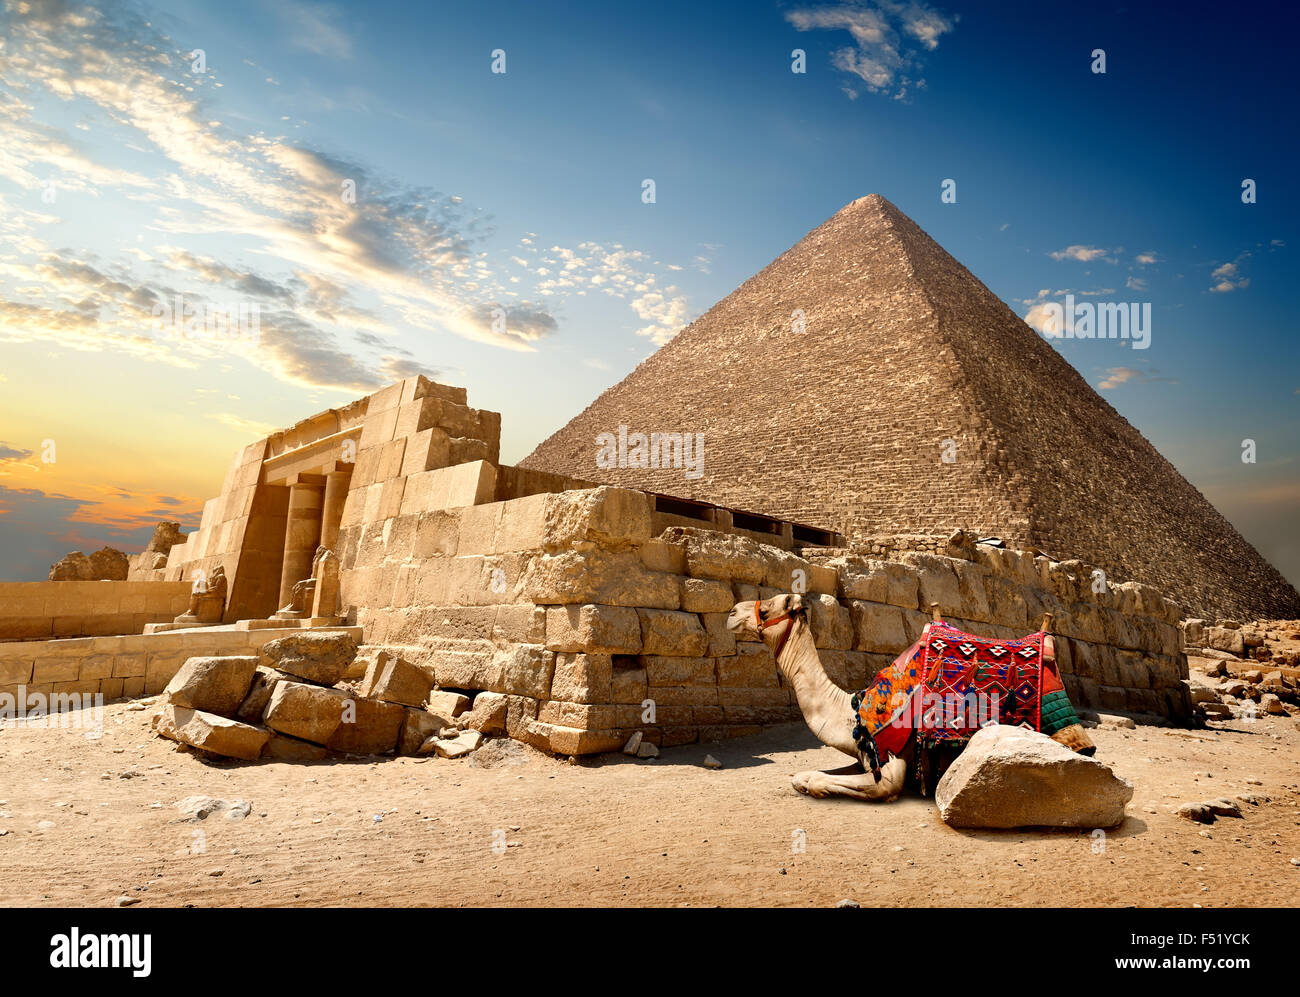 Camel rests near ruins of entrance to pyramid - Stock Image